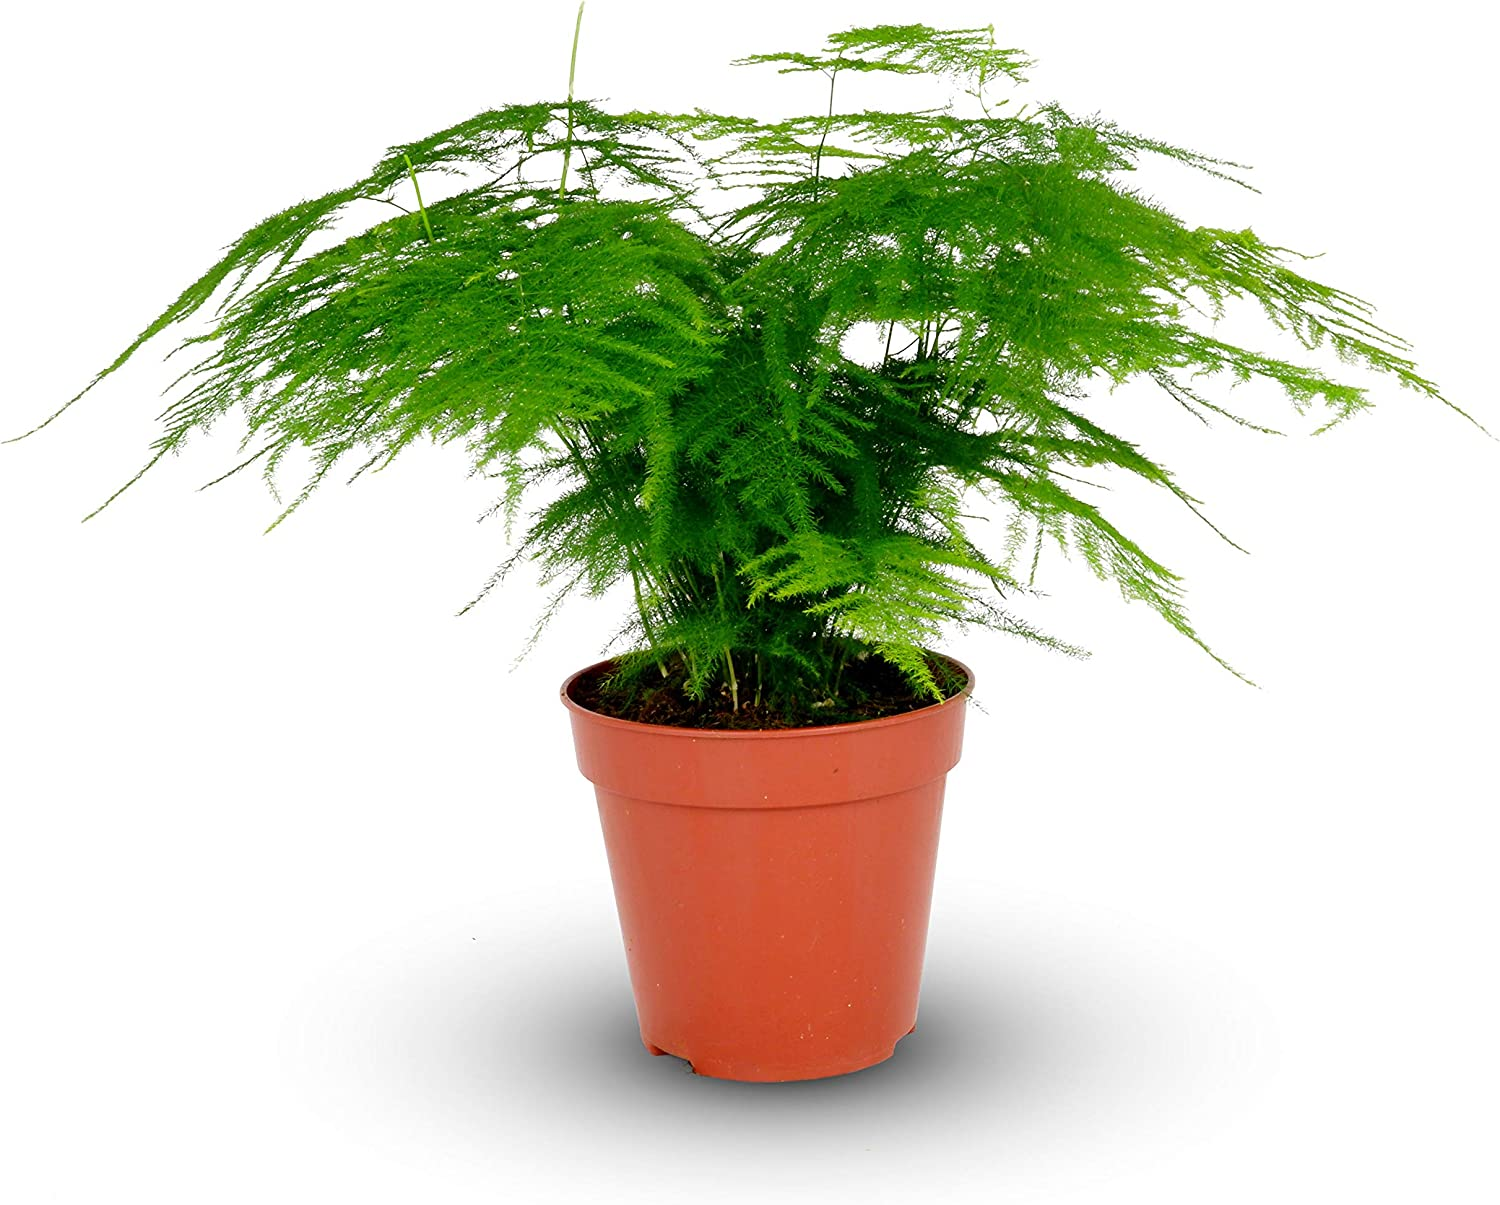 Asparagus Plumosus House Plant In A 12cm Pot Asparagus Fern Plant Amazon Co Uk Garden Outdoors